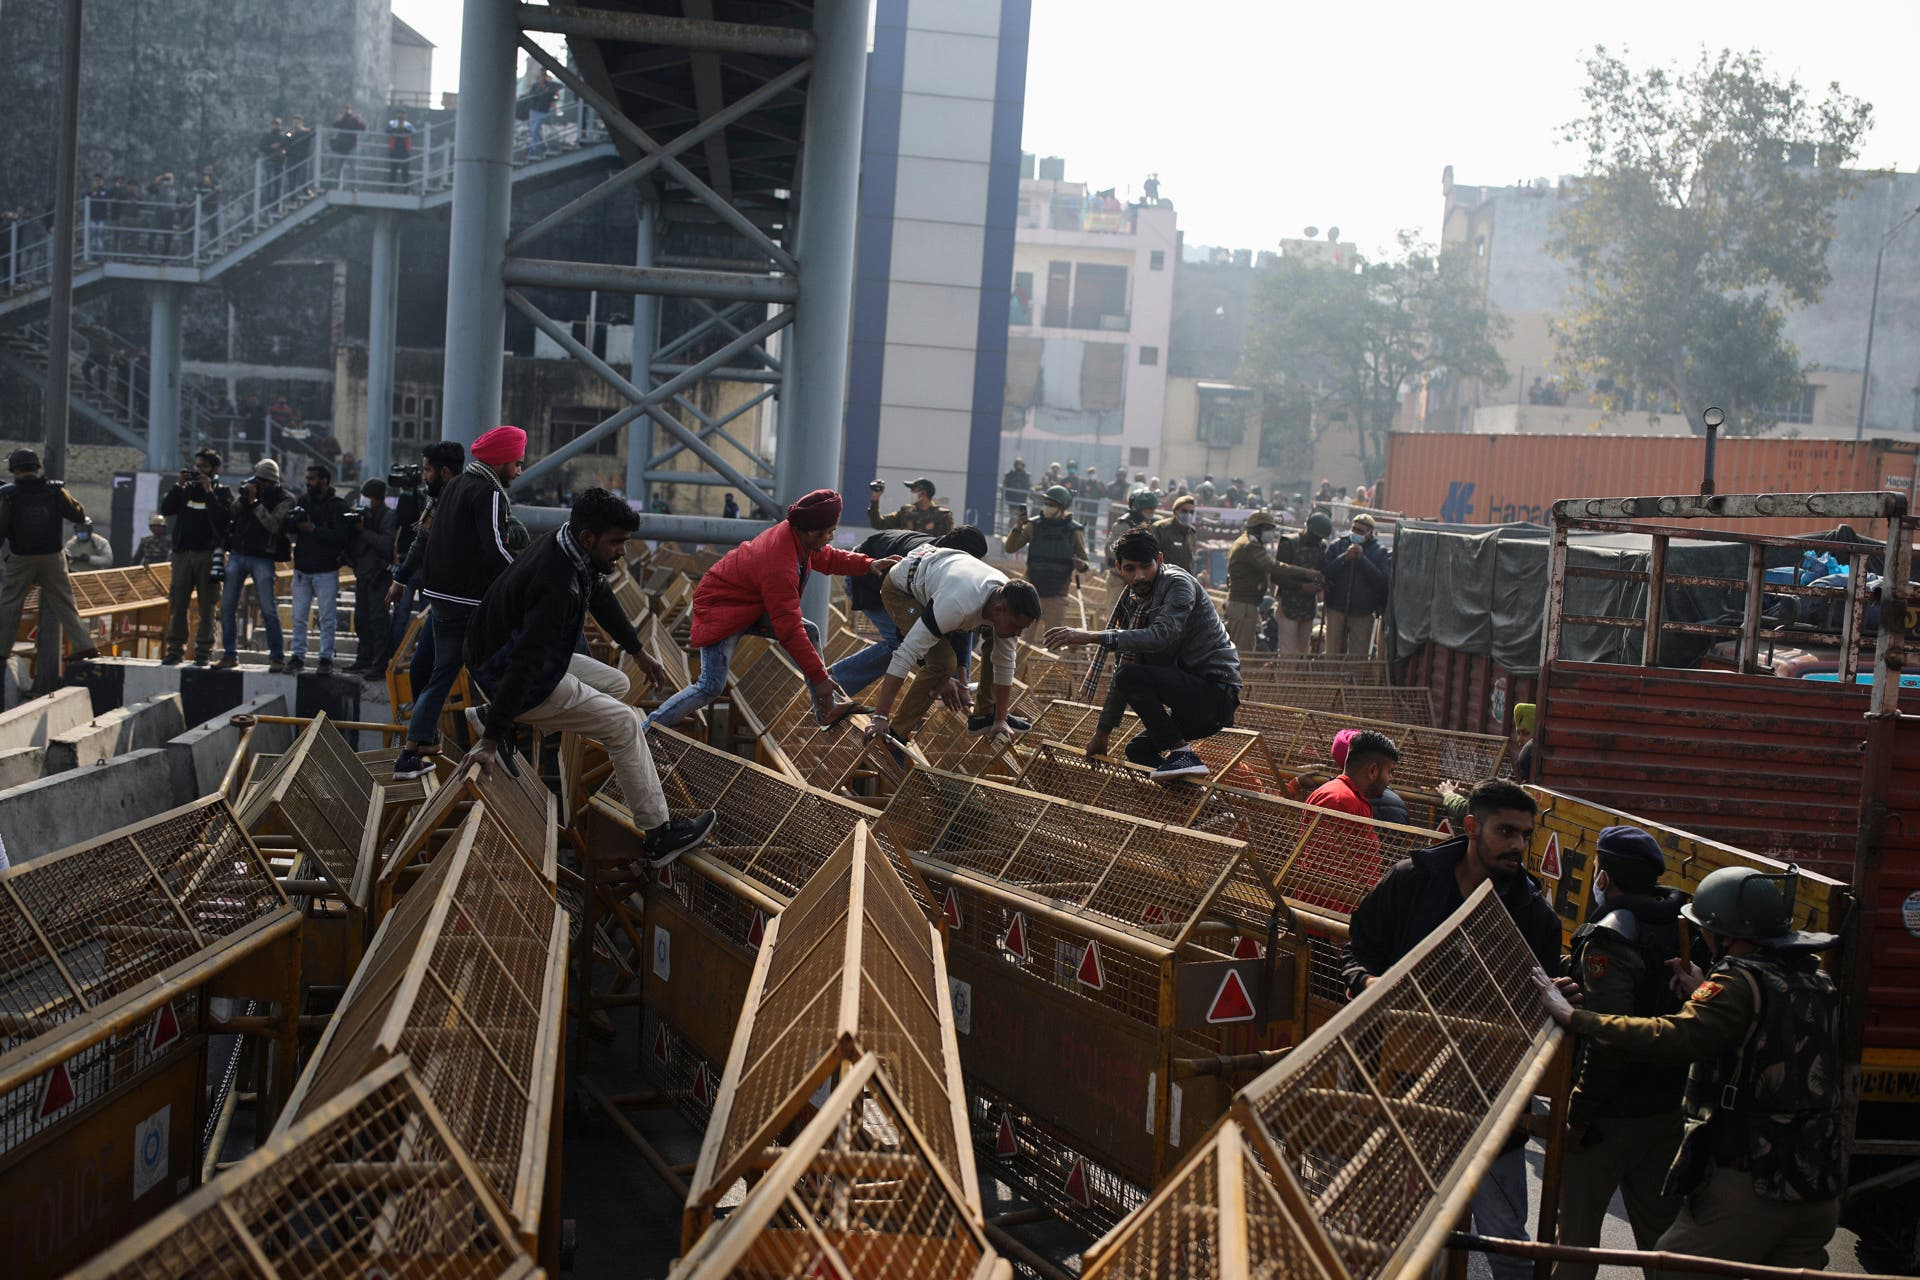 Protesting farmers jump police barricades tp march to the capital during India's Republic Day celebrations in New Delhi, India, Tuesday, Jan.26, 2021. (AP)